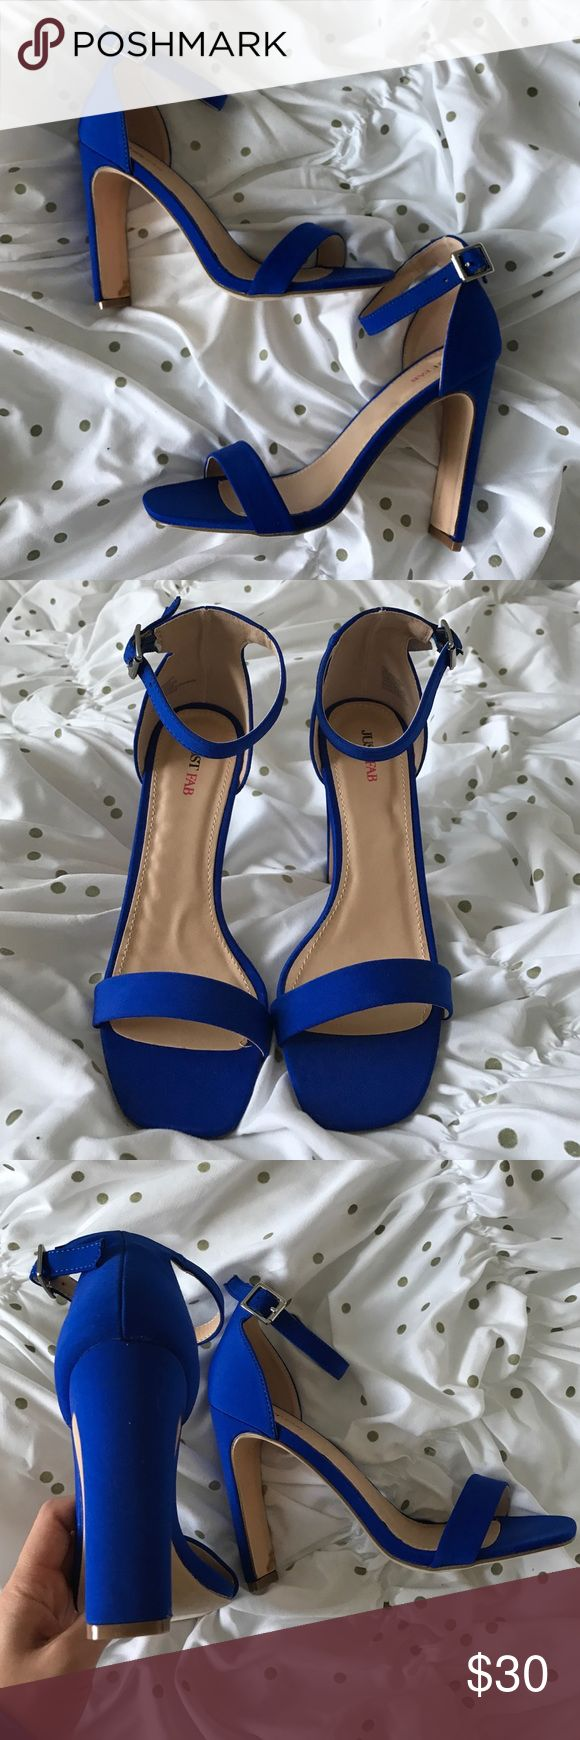 Brand new justfab royal blue ankle strap heels 6.5 Beautiful blue heels, they look skinny from the side but are thick and provide more stability, never got the chance to wear them, so cute JustFab Shoes Heels